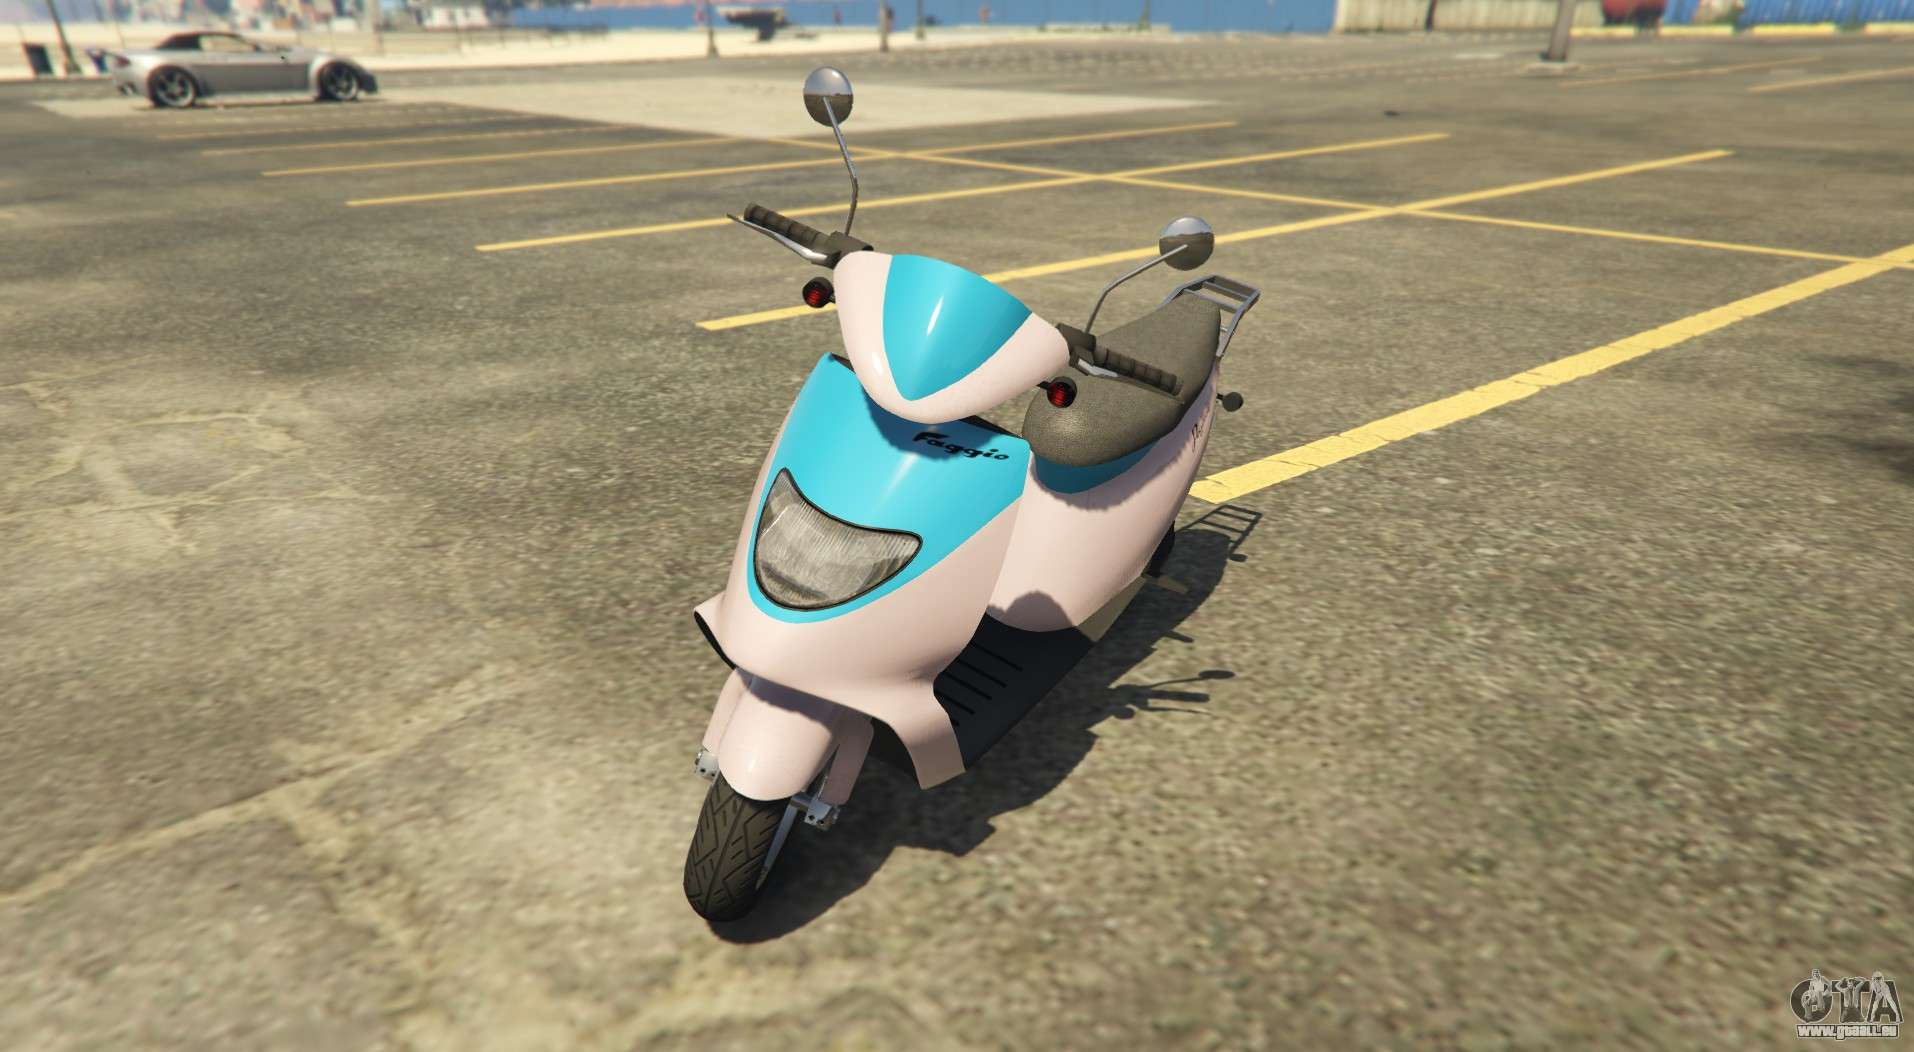 Sports scooter Pegassi Faggio Sport